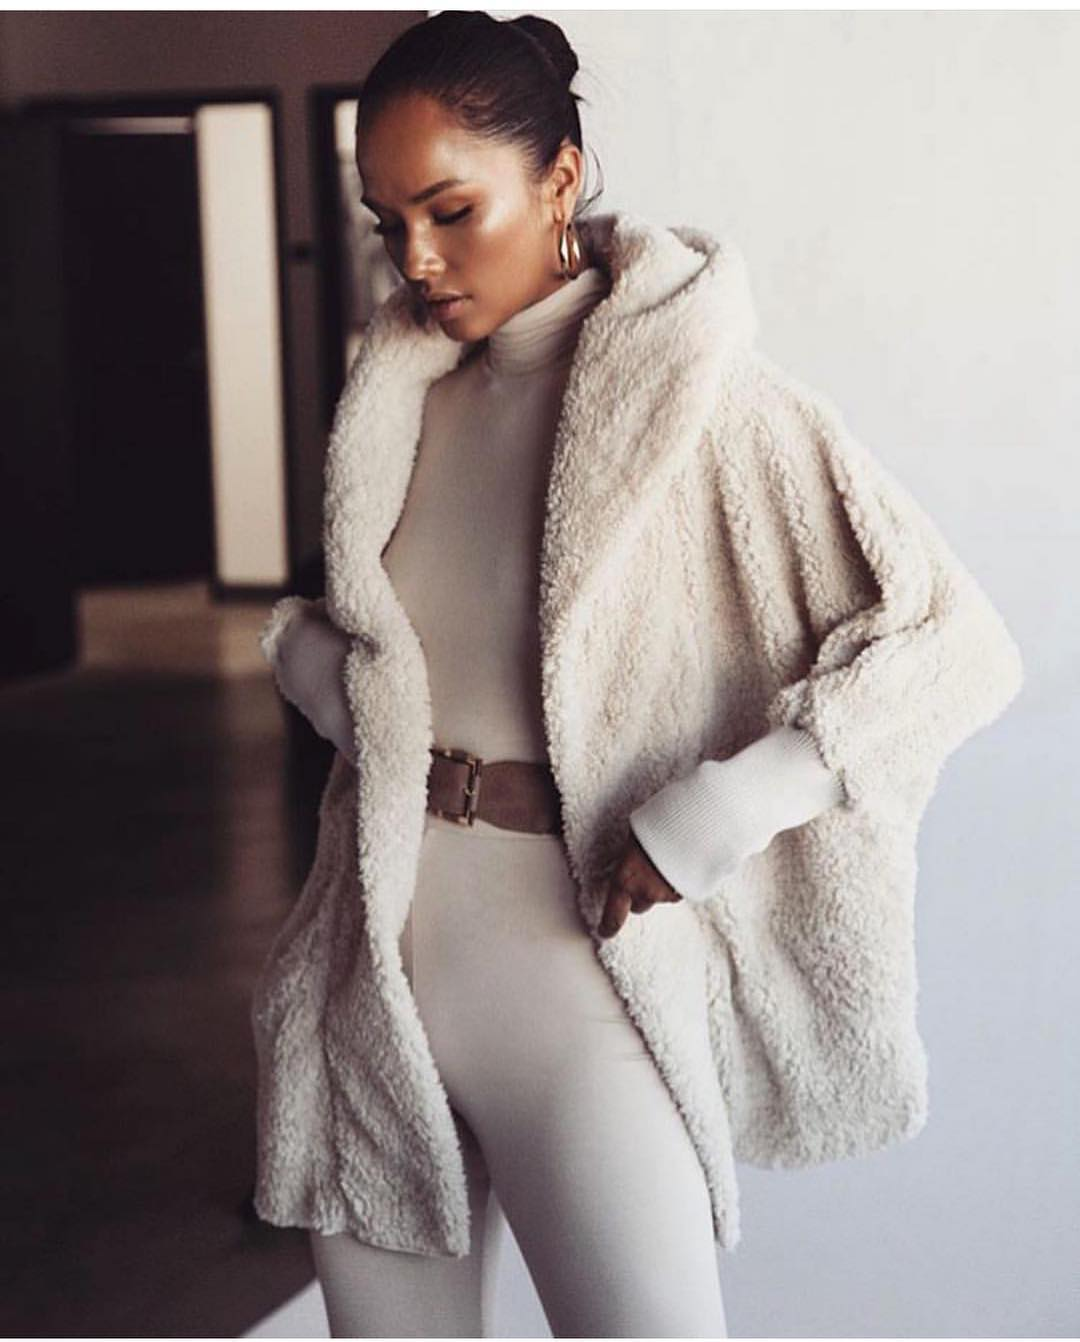 Skin Tight Jumpsuit And Fur Cape-Coat: All Cream White Outfit 2020